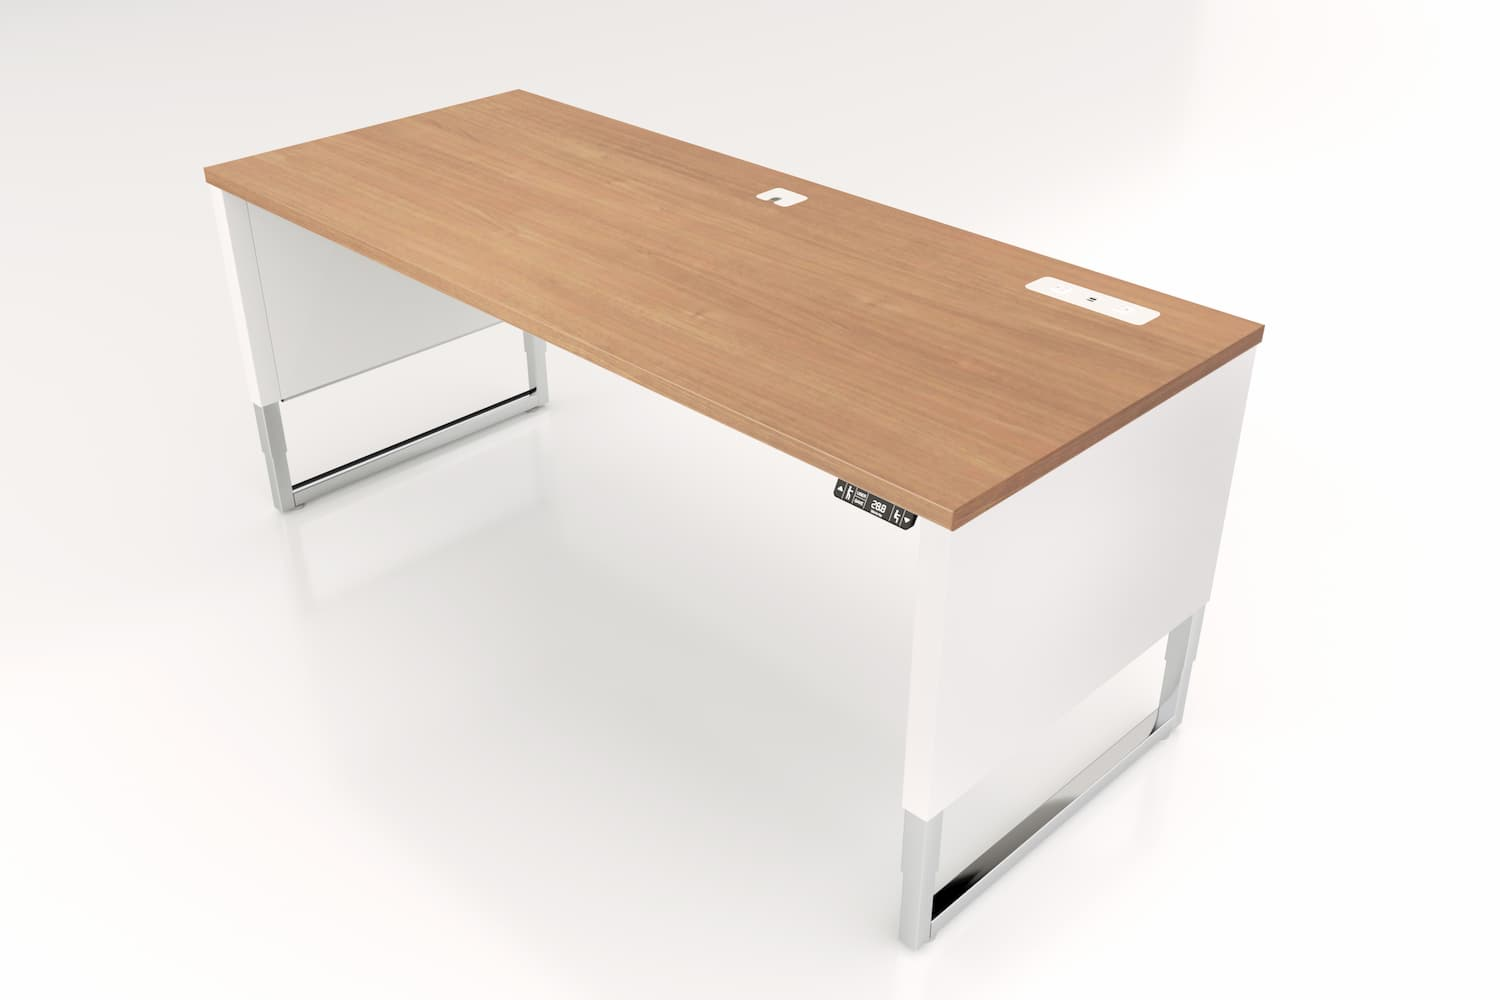 Advent-Desk-ADV-7230-WH-Custom-Top-9